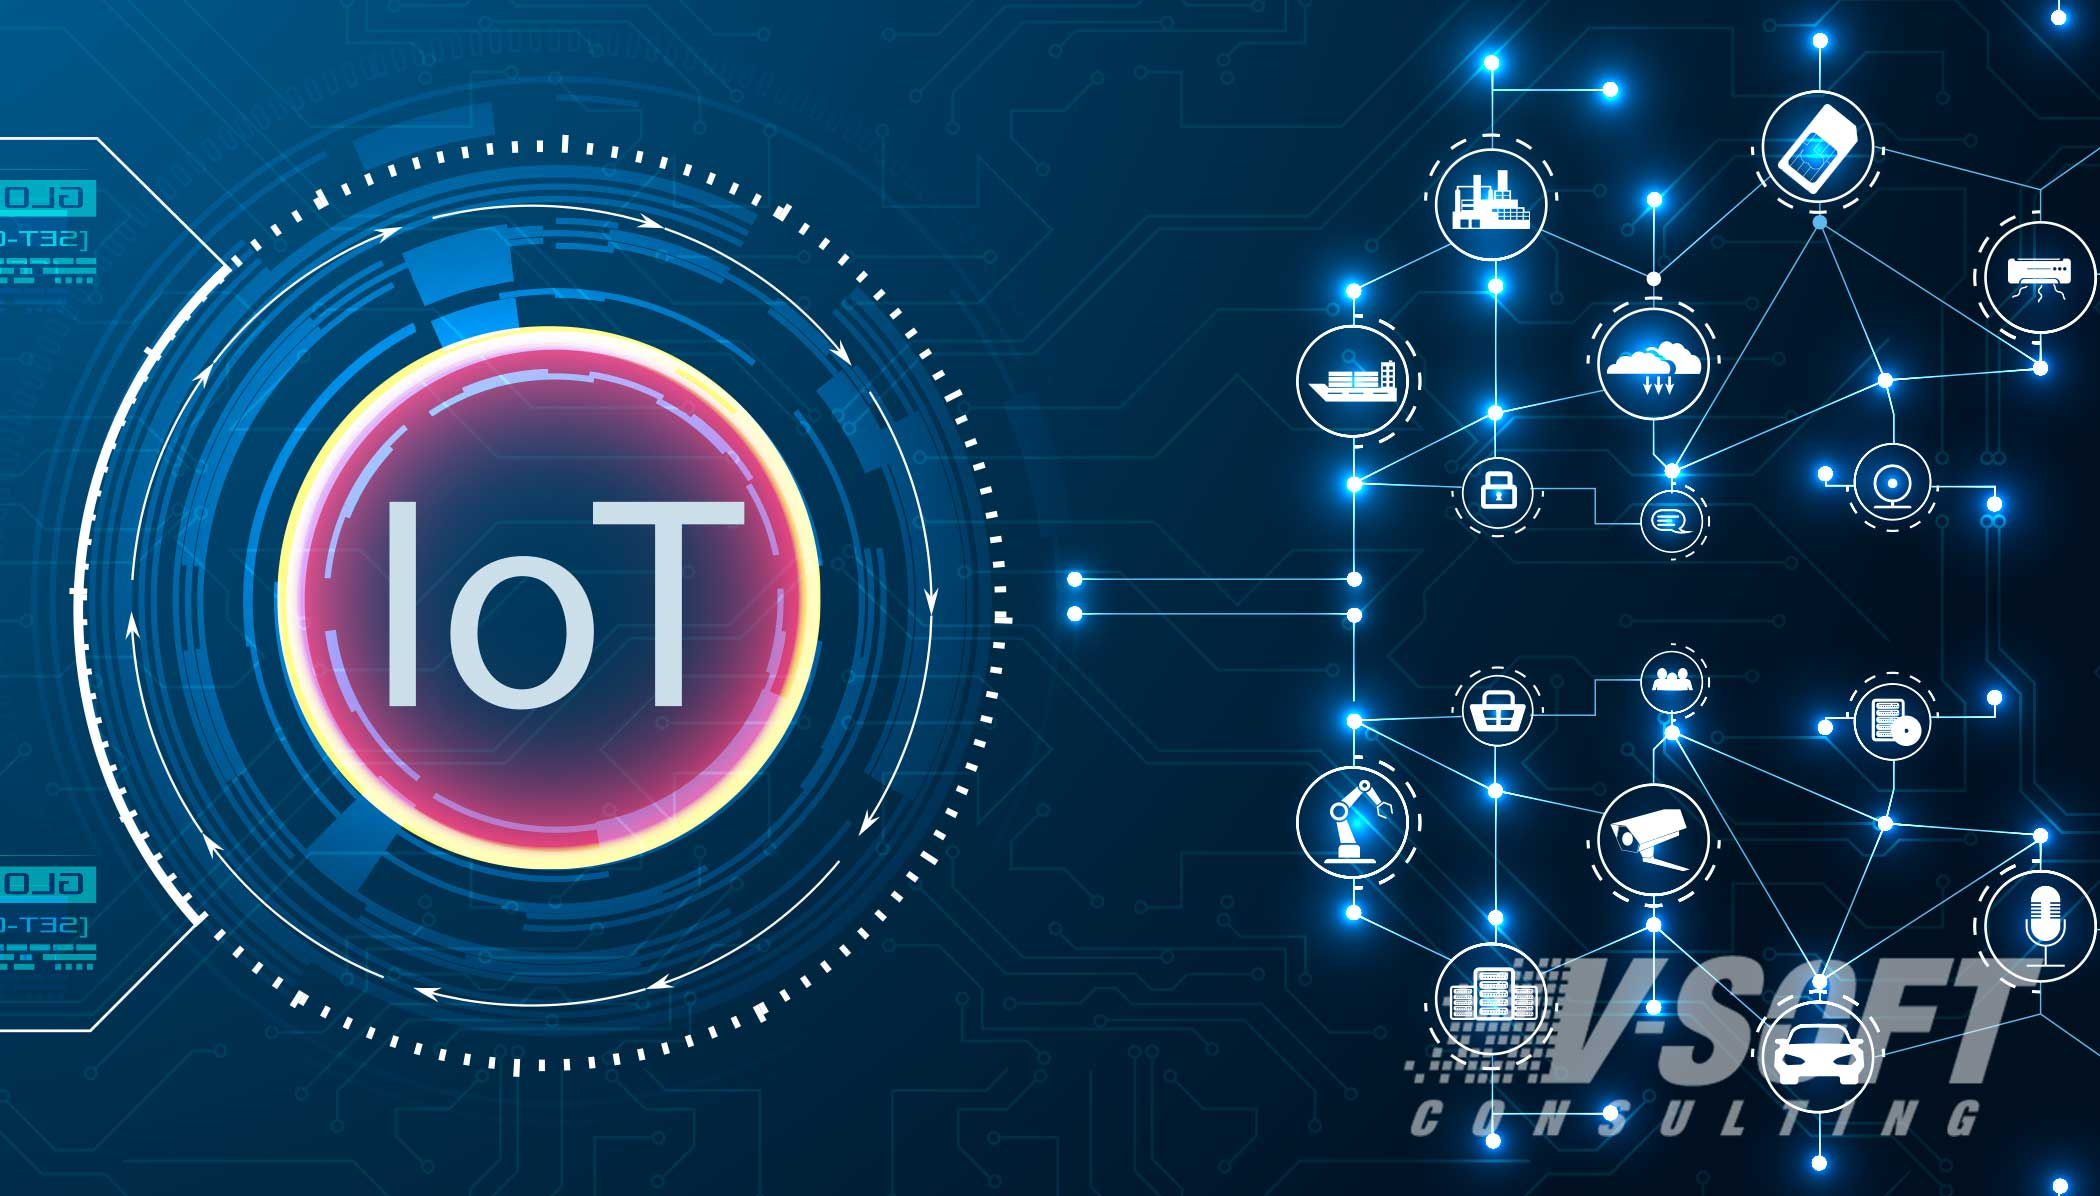 Blog Article About Internet of Things (IoT) Testing